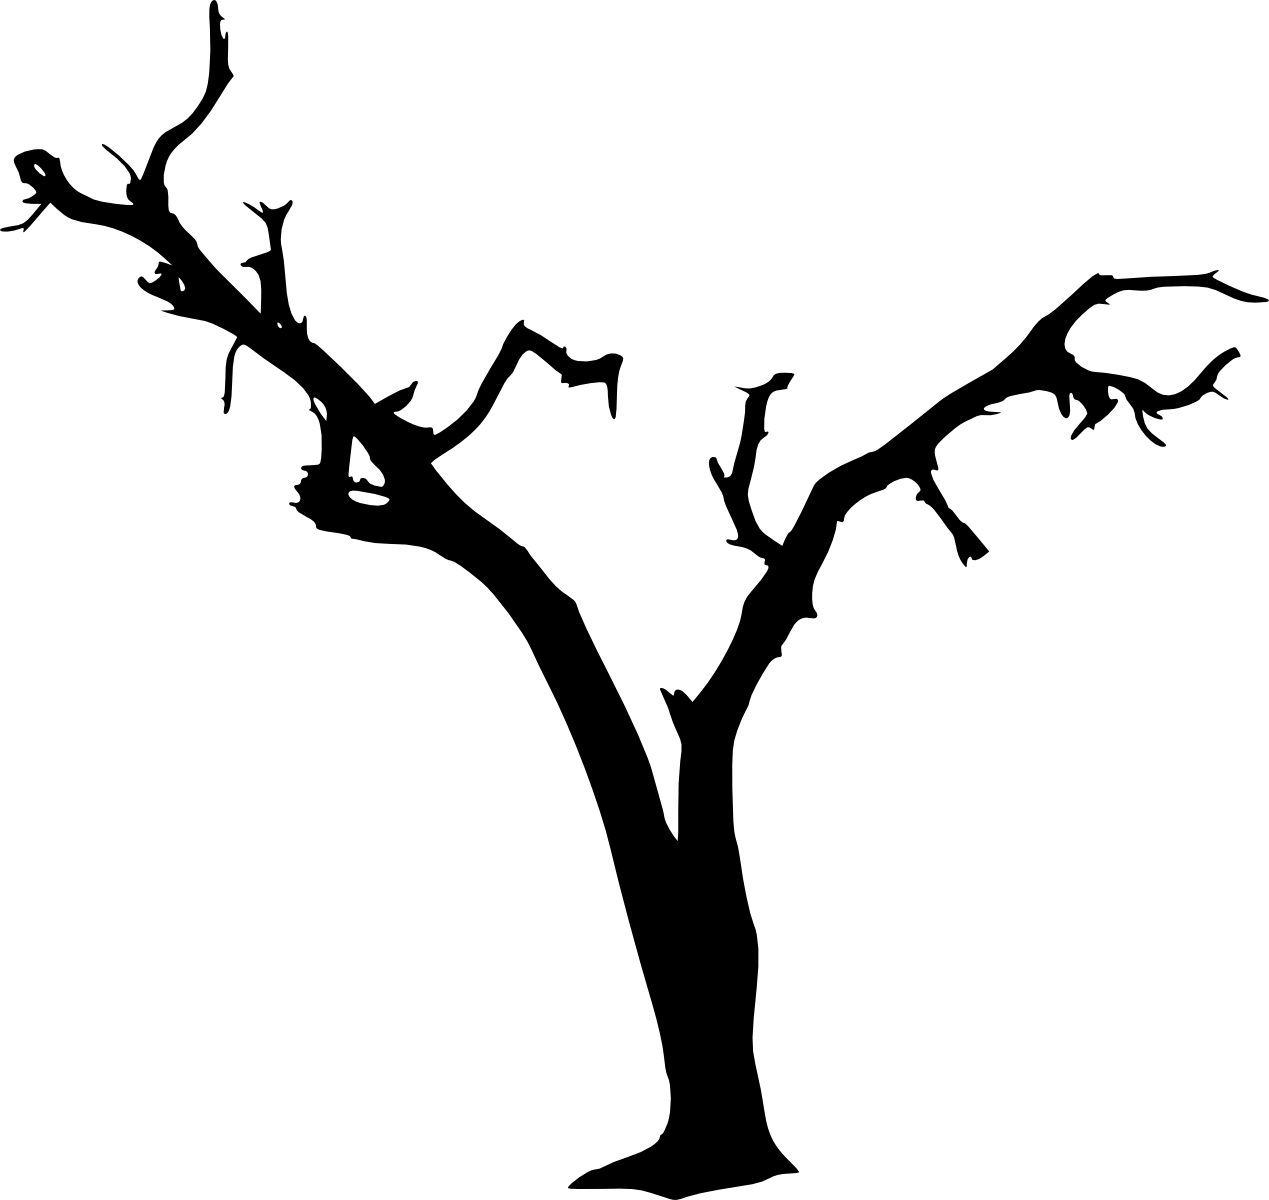 10 Spooky Dead Tree Silhouette Transparent Vol 2